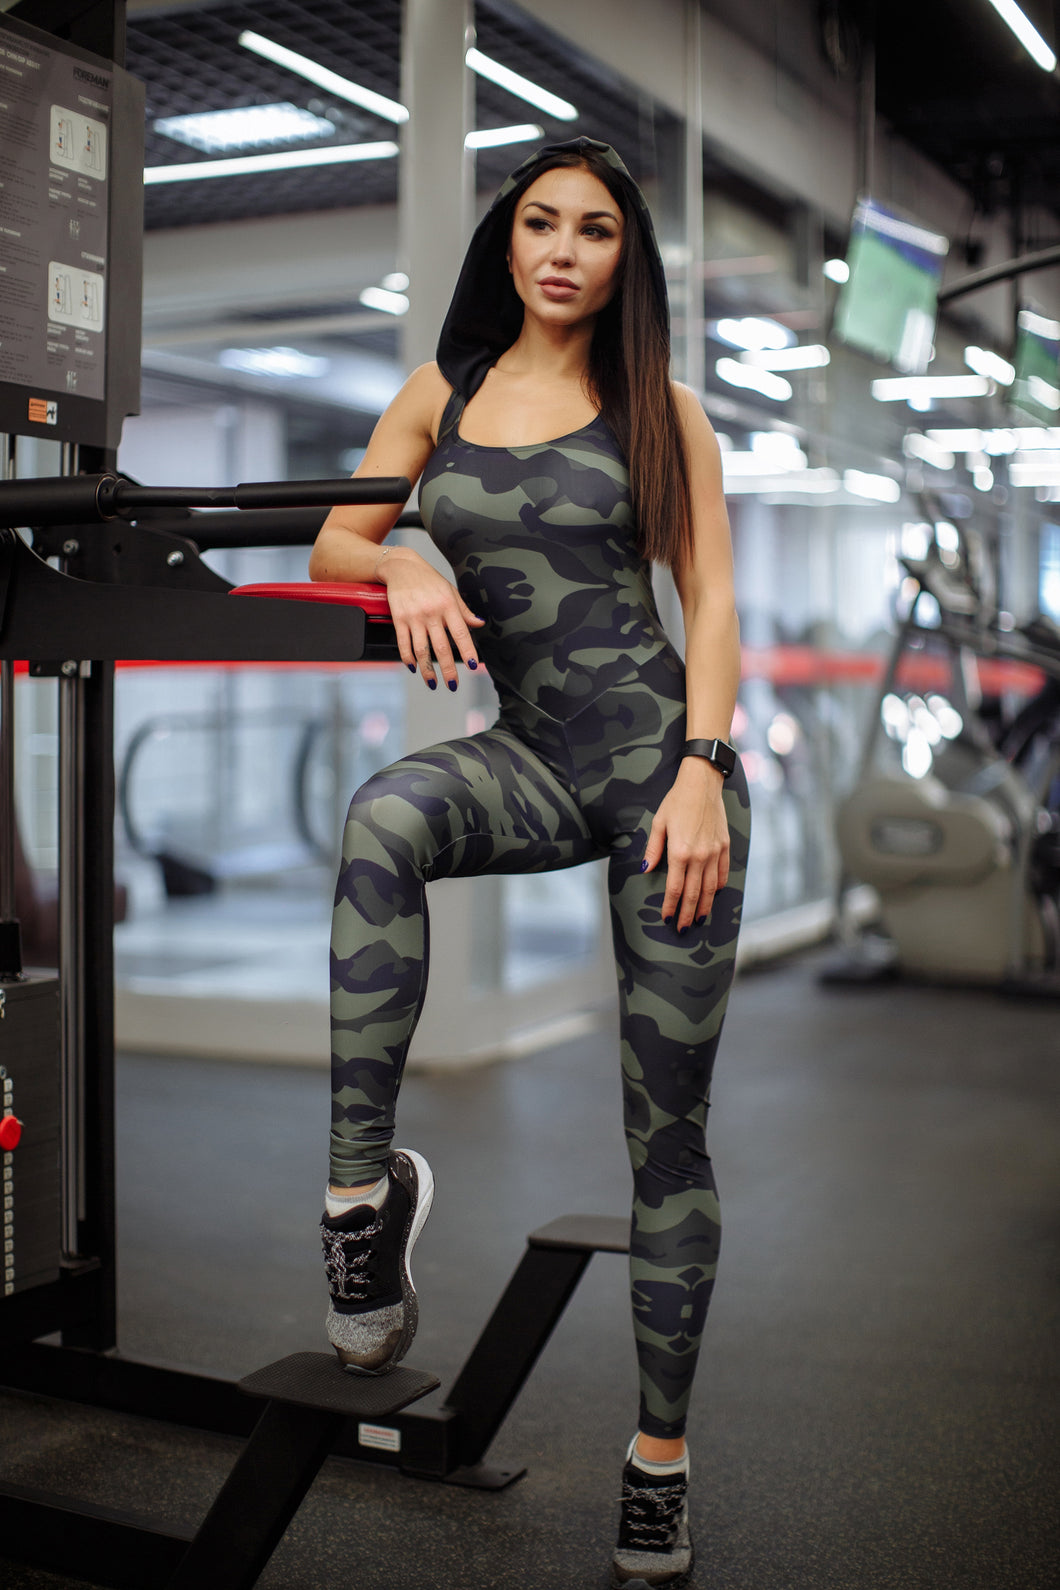 Jumpsuit for Workout